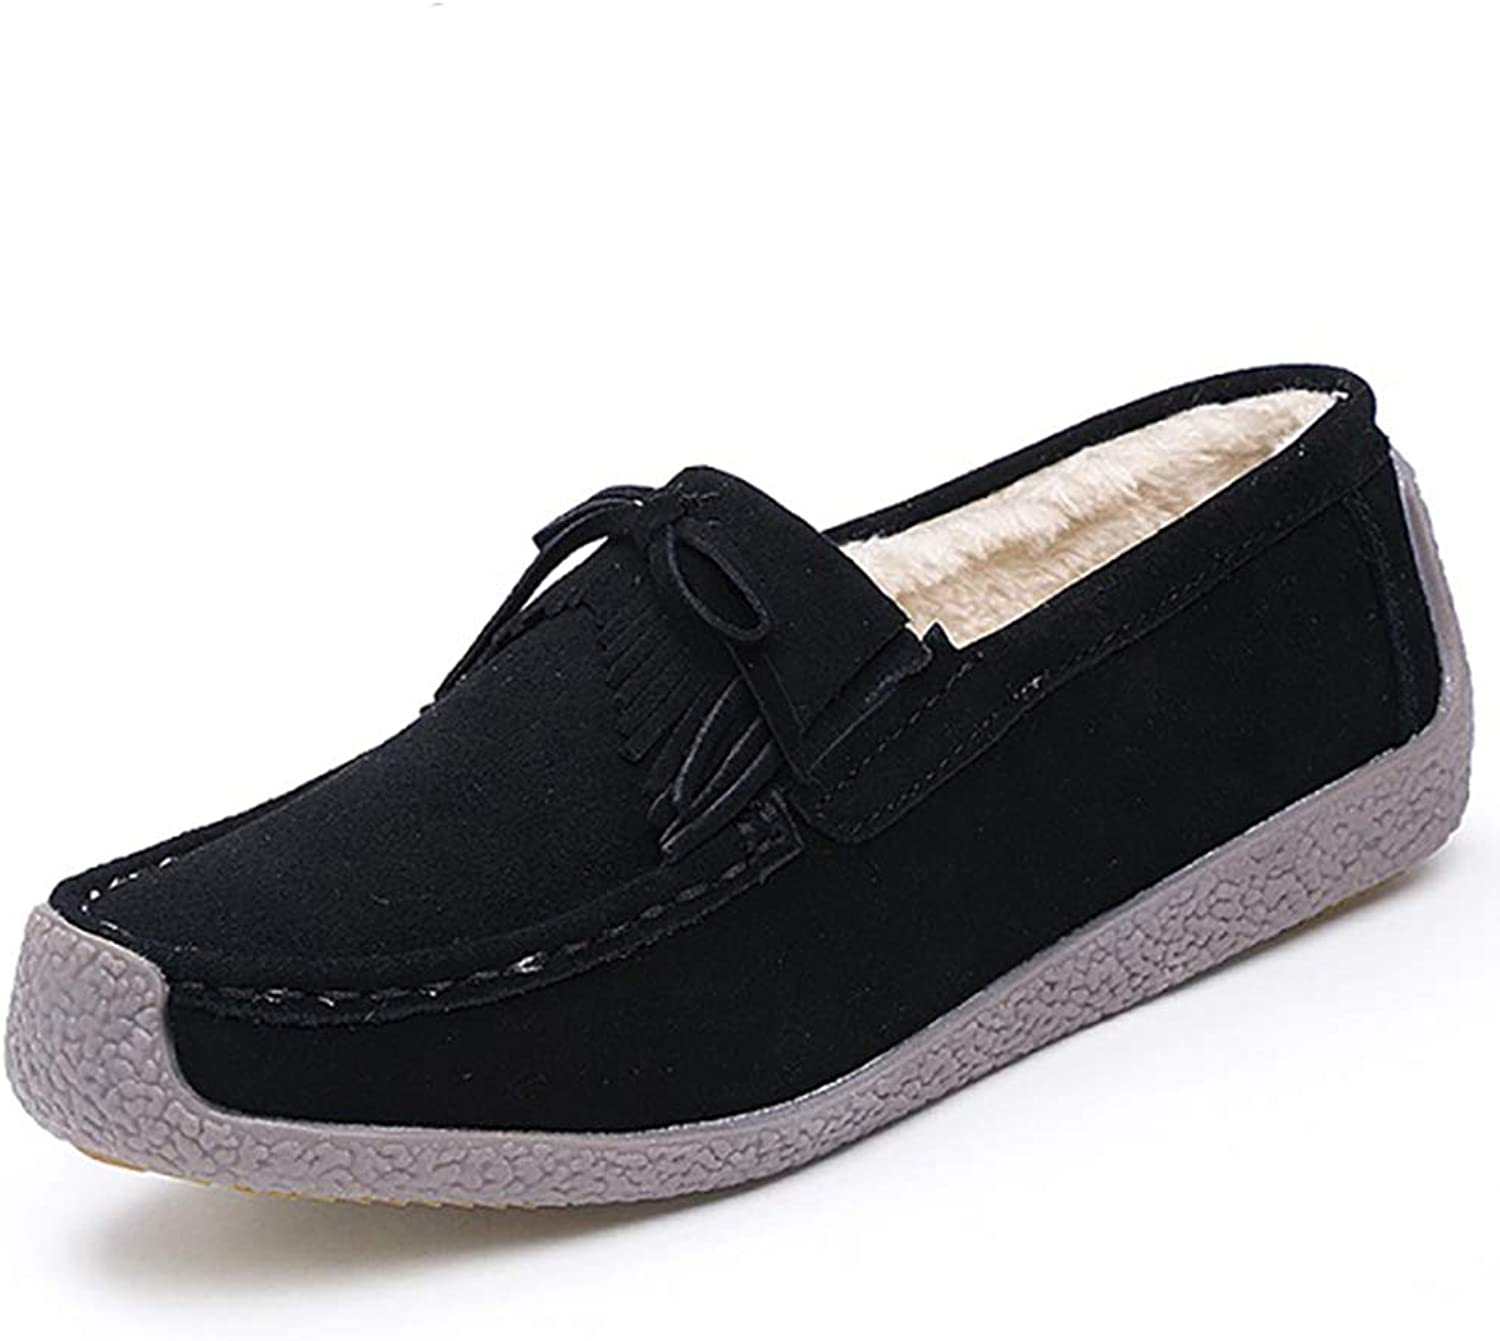 August Jim Women Flats shoes,Slip on Suede Leather Warm Fur Boat shoes